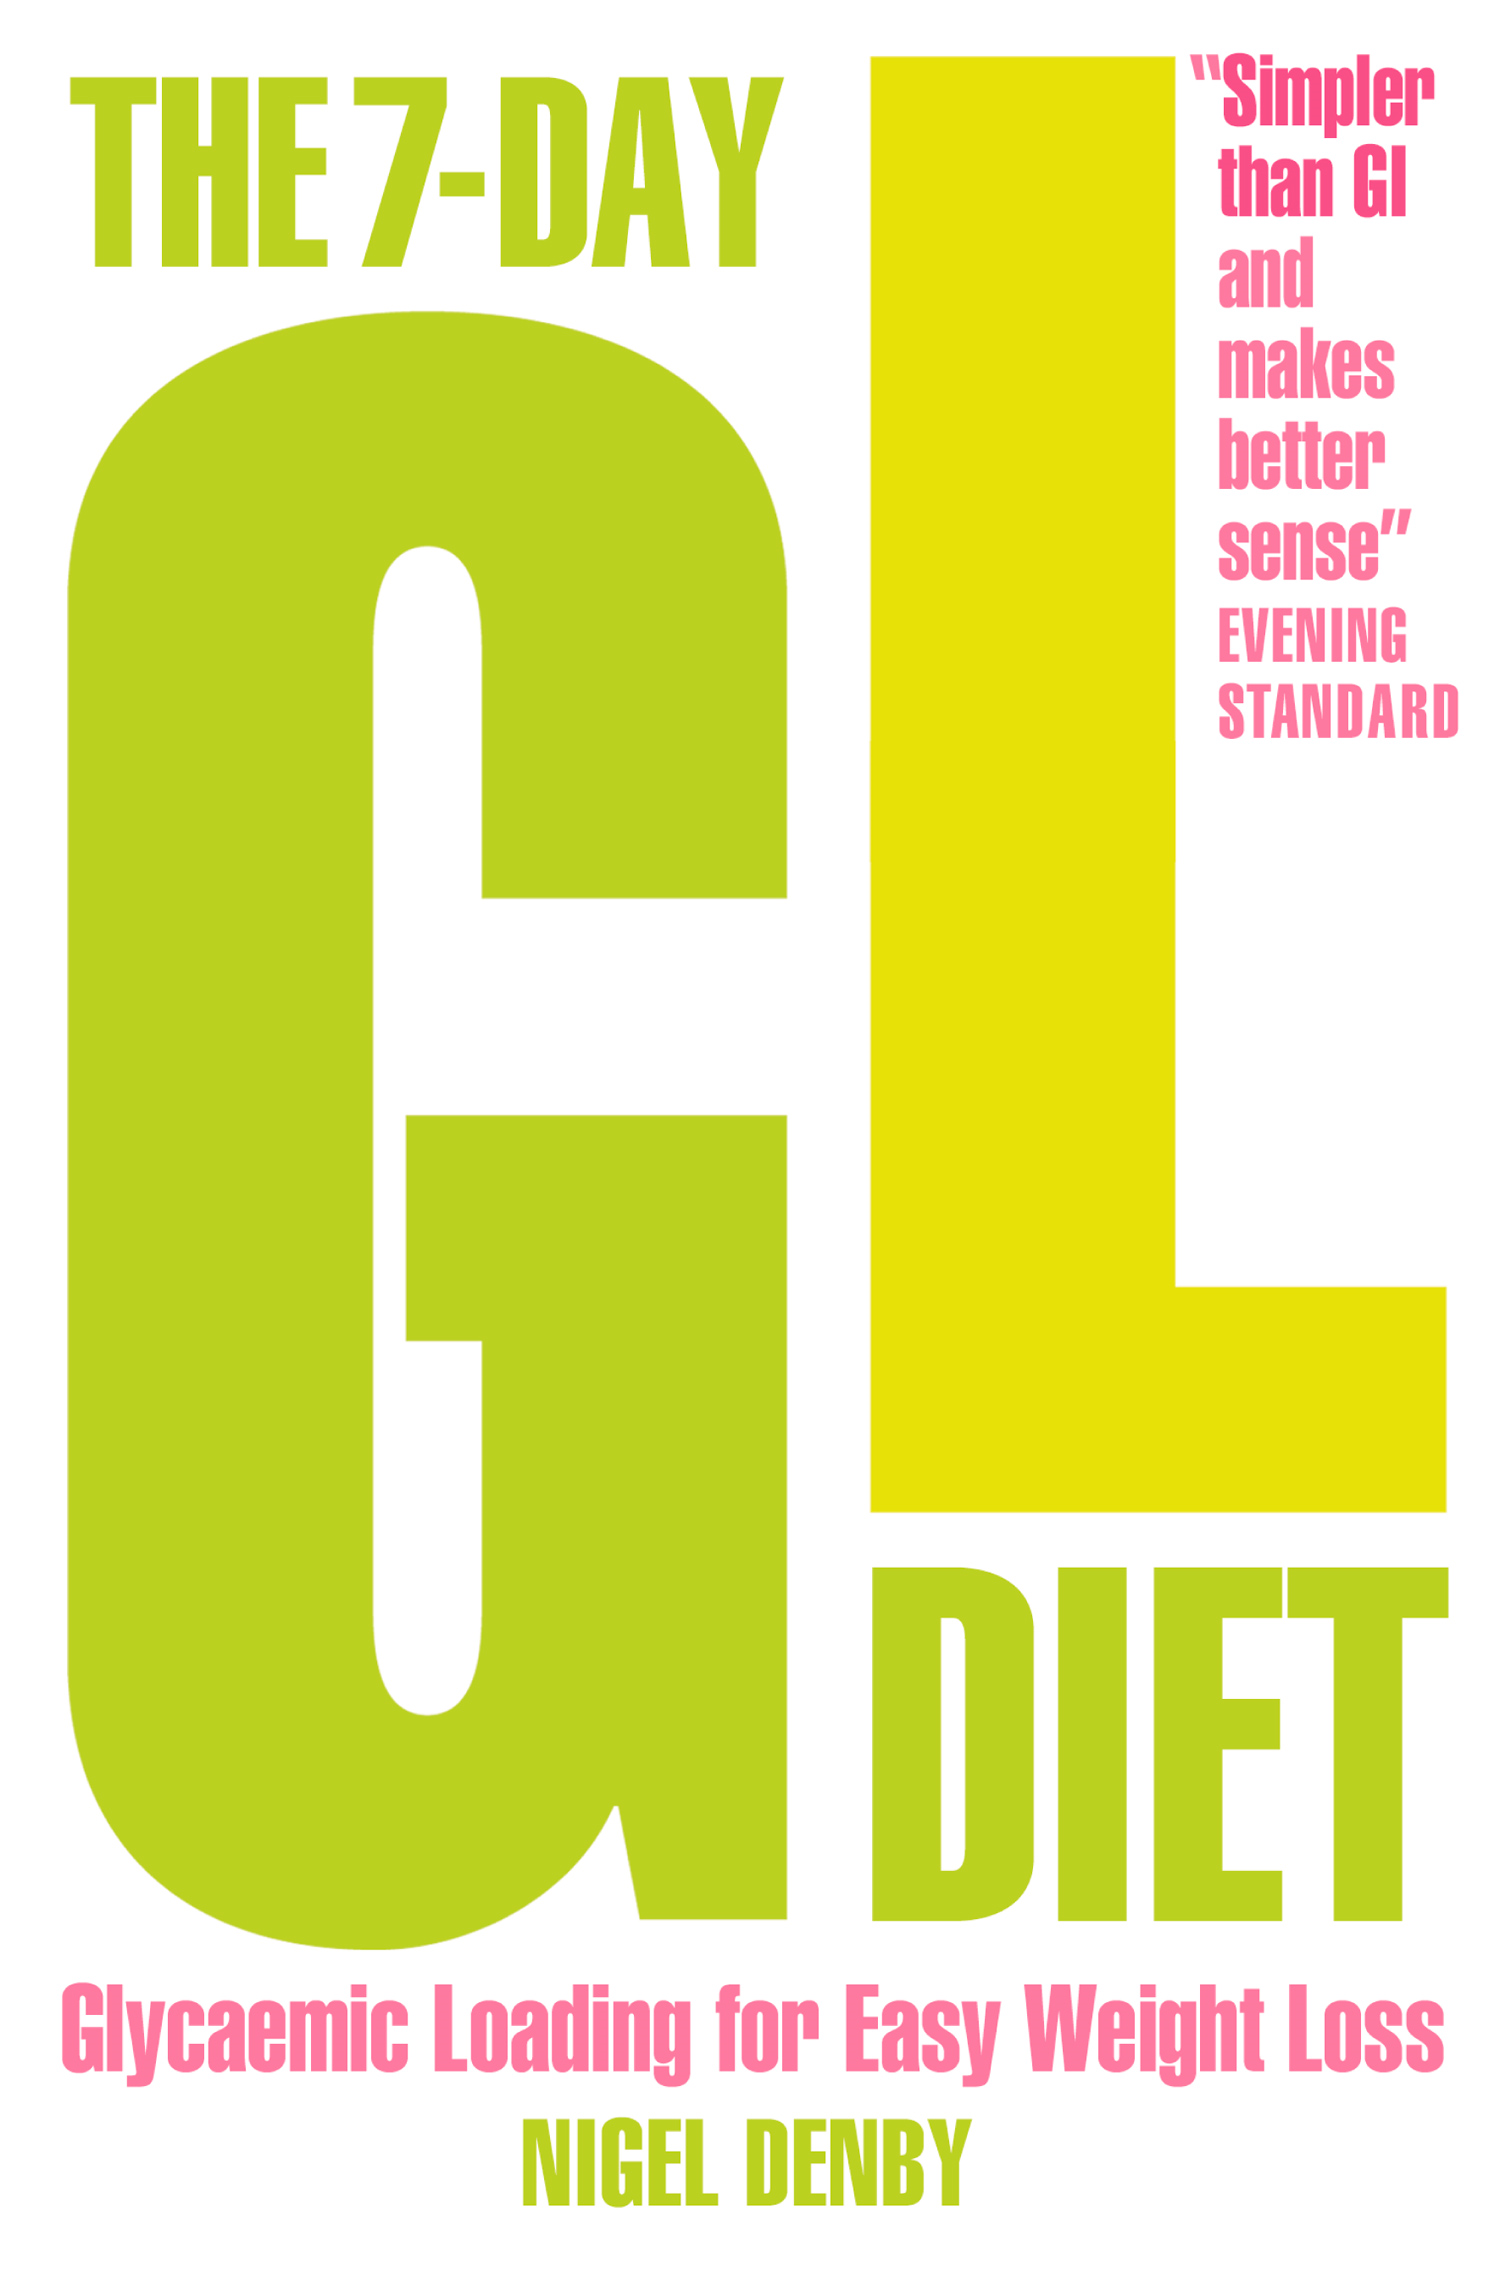 The 7-Day GL Diet: Glycaemic Loading for Easy Weight Loss By: Nigel Denby